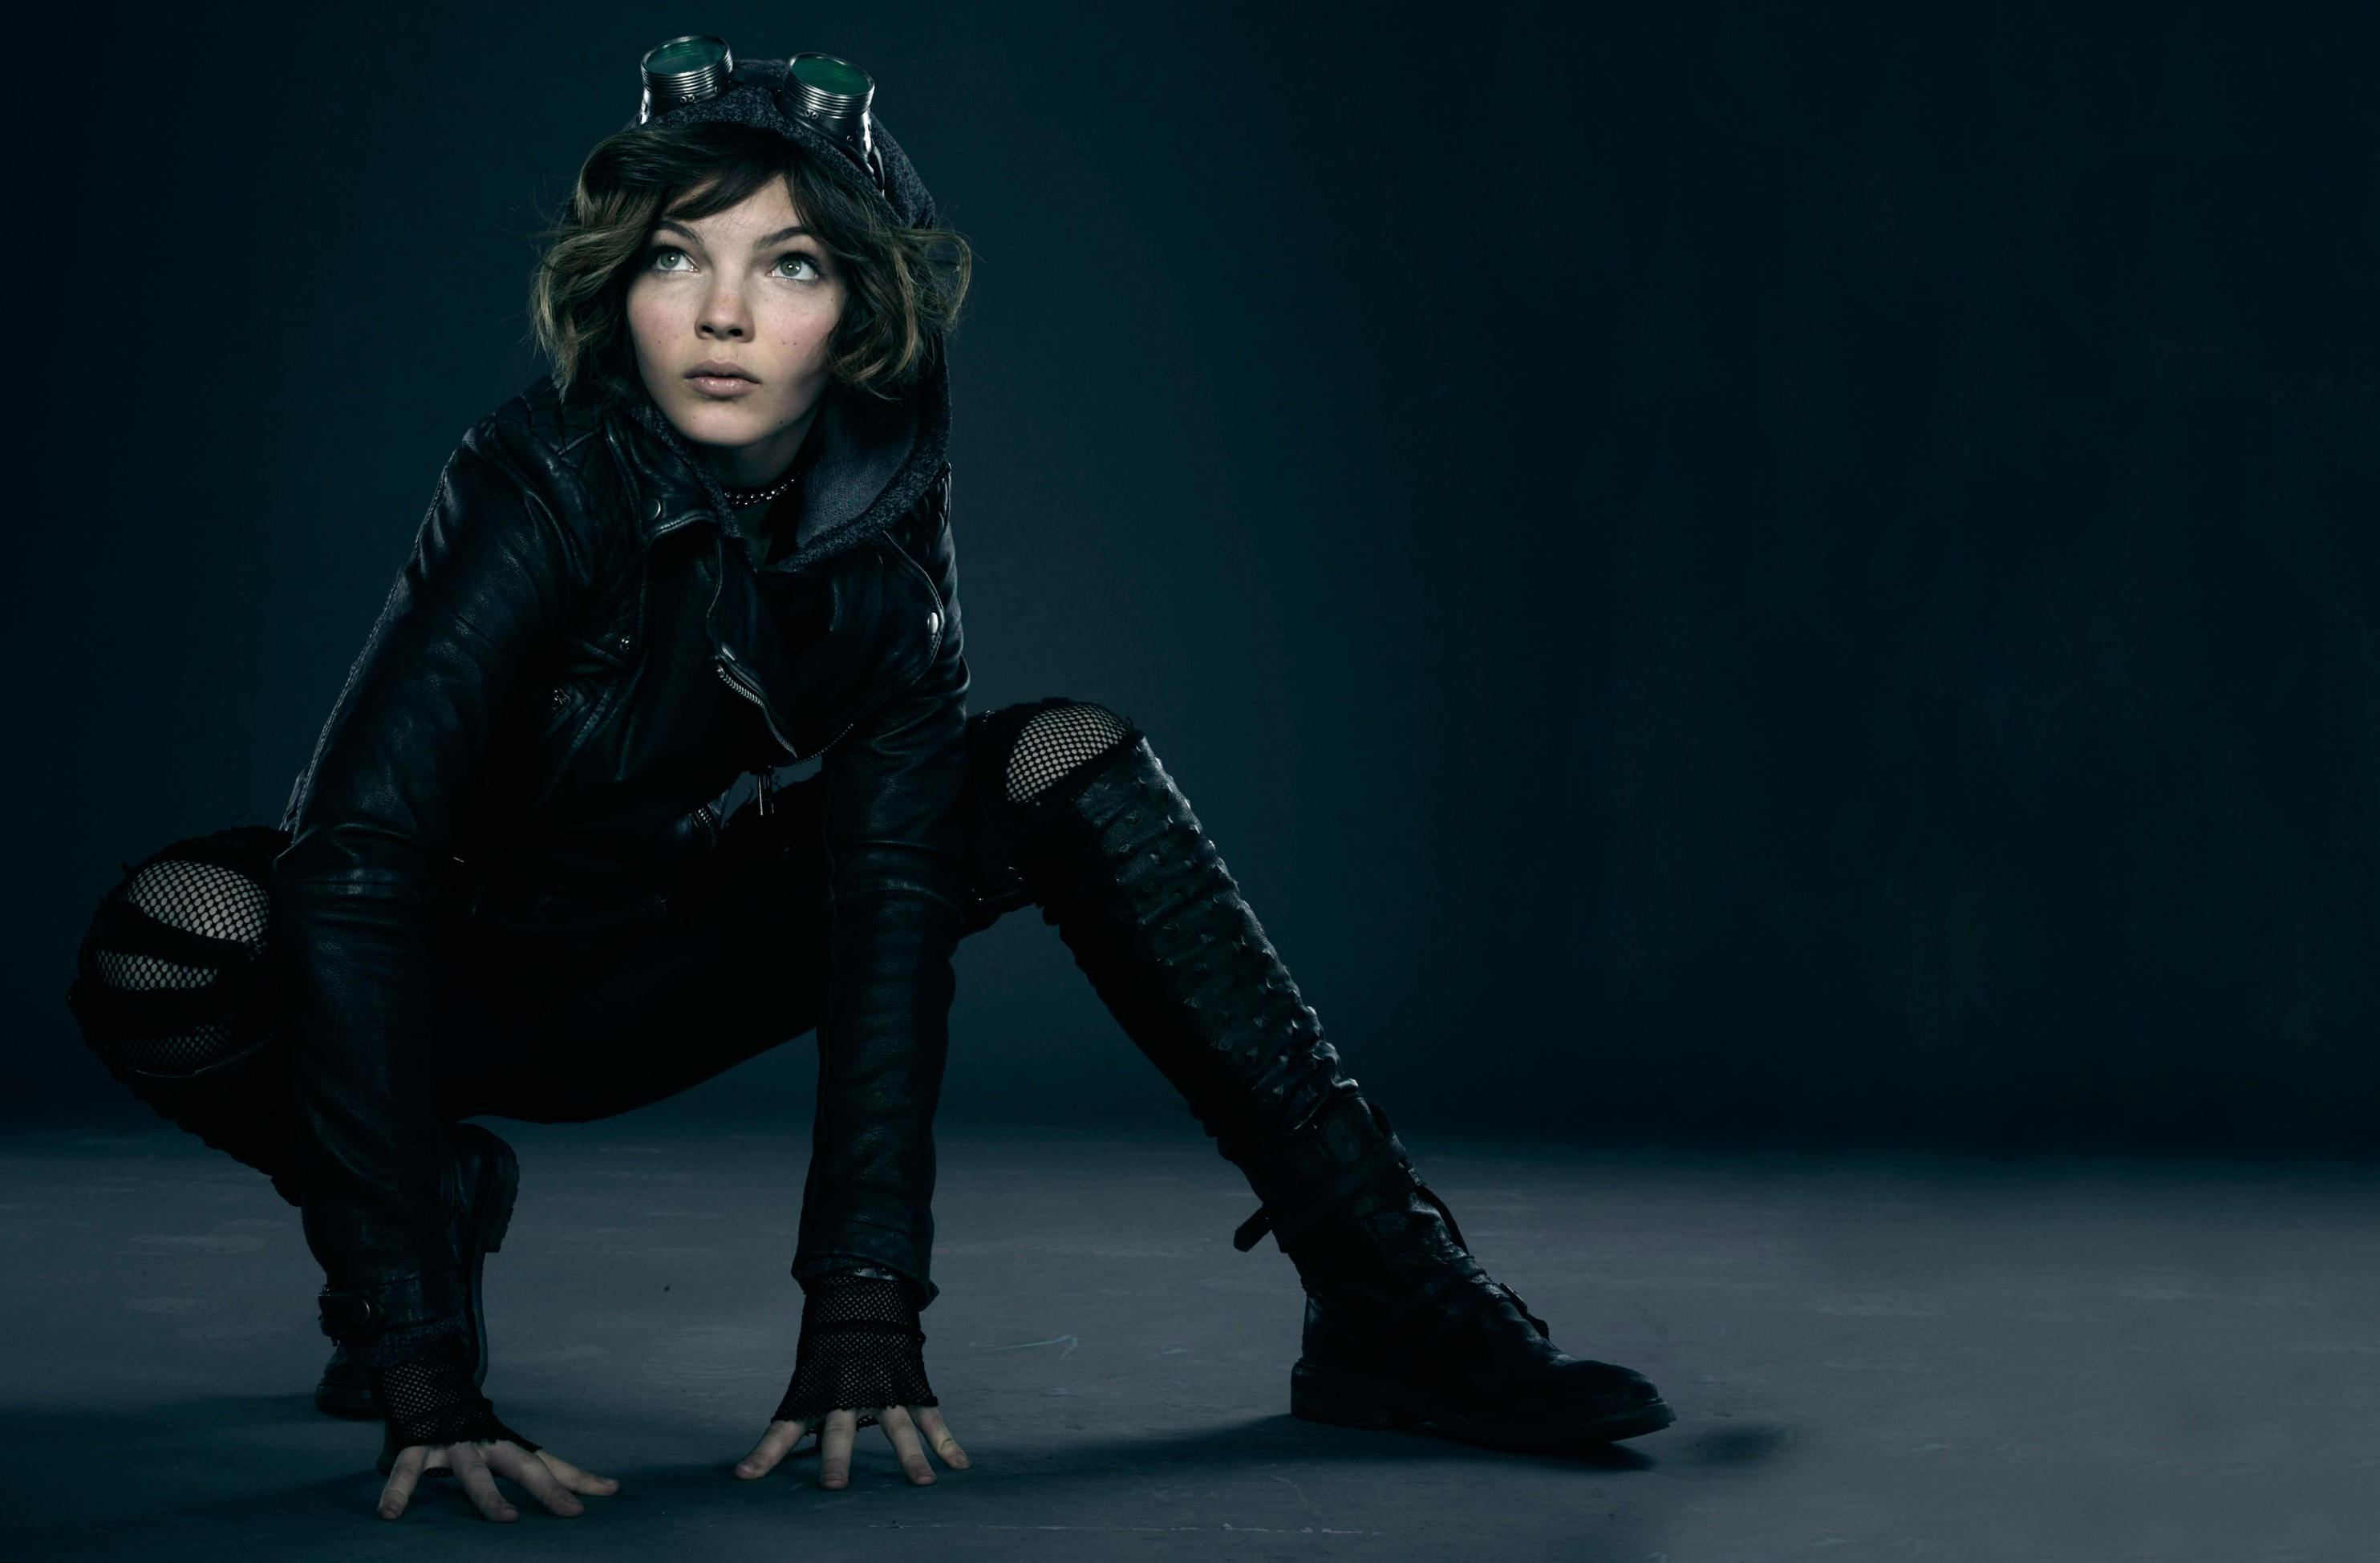 camren bicondova gothamcamren bicondova abs, camren bicondova gotham, camren bicondova vk, camren bicondova 2016, camren bicondova gif, camren bicondova 2017, camren bicondova feet pics, camren bicondova michelle pfeiffer, camren bicondova gif tumblr, camren bicondova bellazon, camren bicondova dance crew, camren bicondova hq, camren bicondova films, camren bicondova website, camren bicondova comic con, camren bicondova interview, camren bicondova eyes, camren bicondova thread, camren bicondova inst, camren bicondova pfeiffer